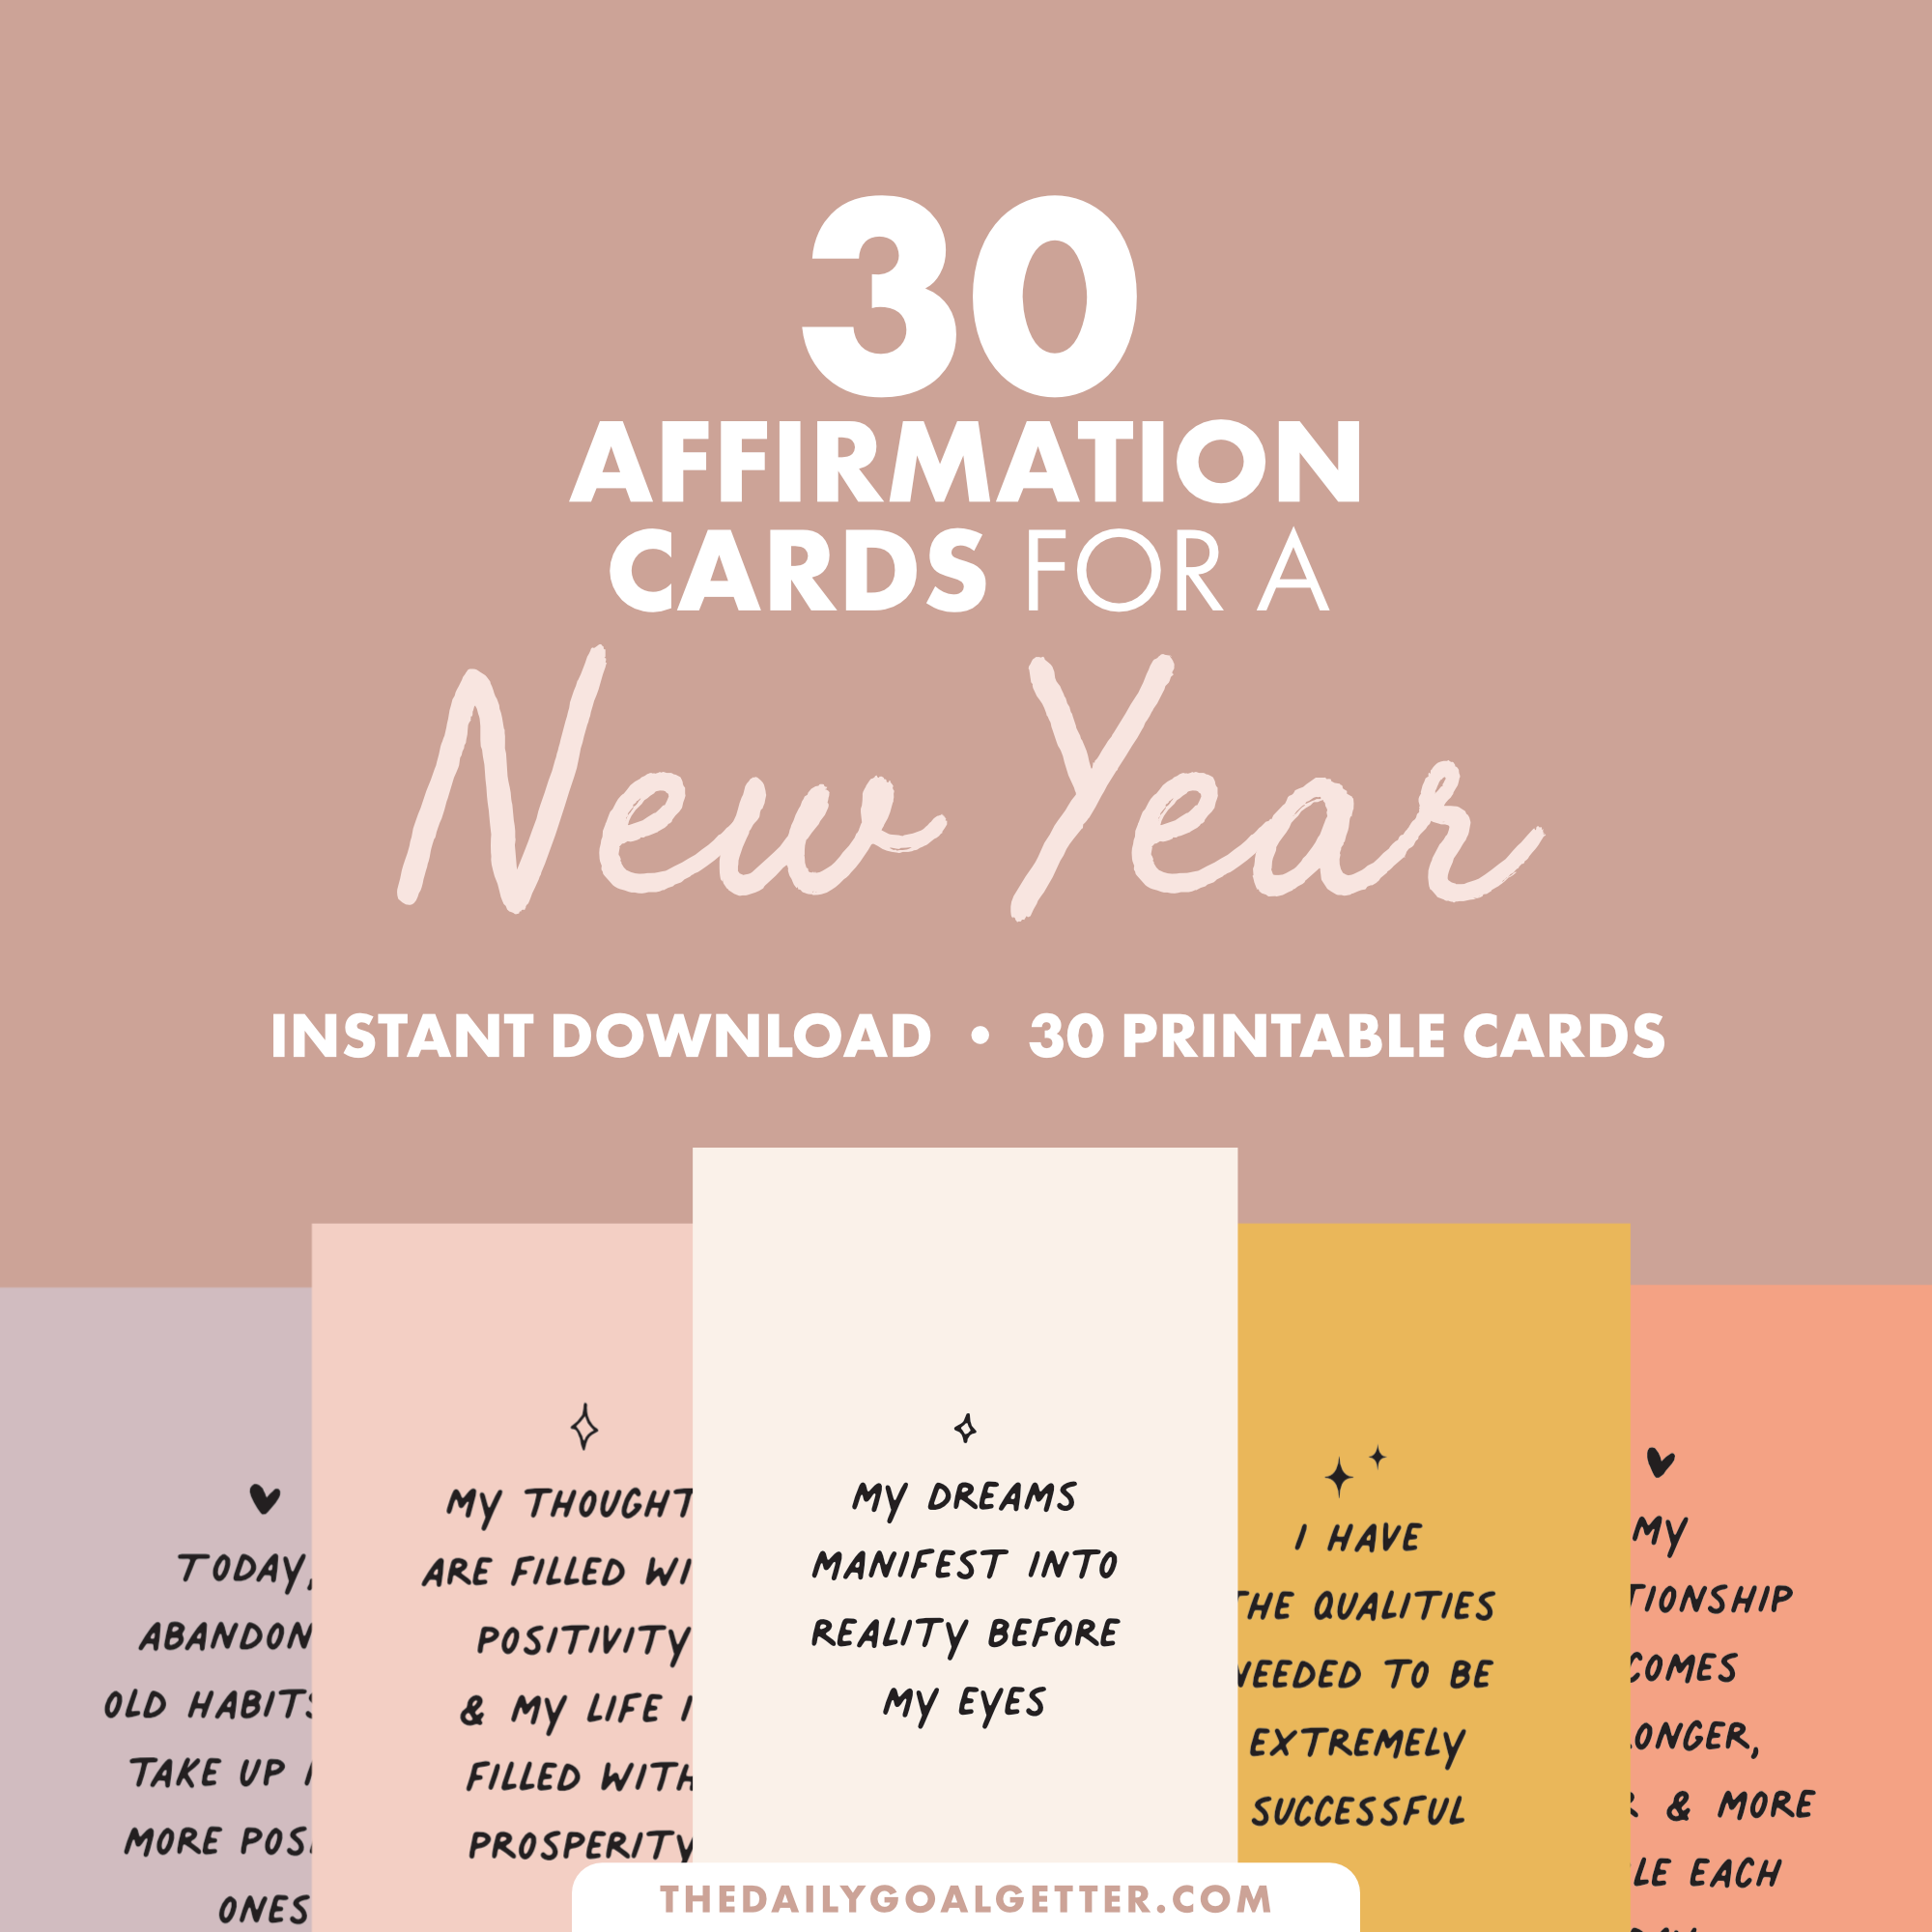 New Year Affirmations: 30 Printable Vision Board Cards